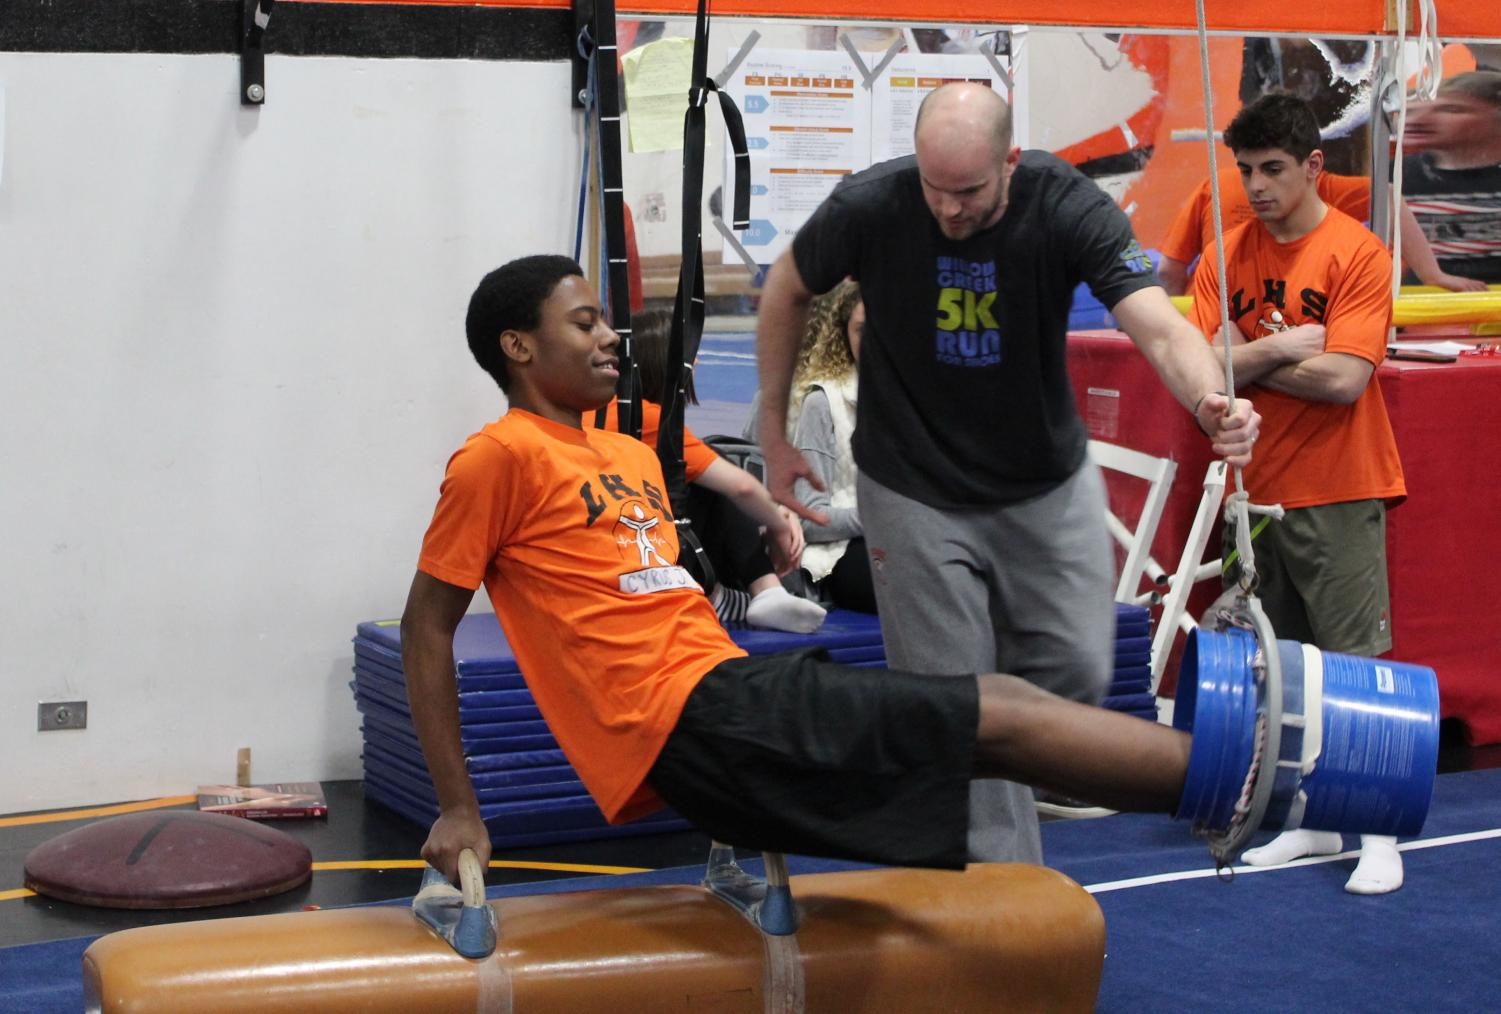 Cyrus Johnson participates in the gymnastics unit of Mr. Adam Stuart's sophomore P.E. class. Next year, some sophomore P.E. classes will separate boys and girls during a small unit on self-defense training for girls.